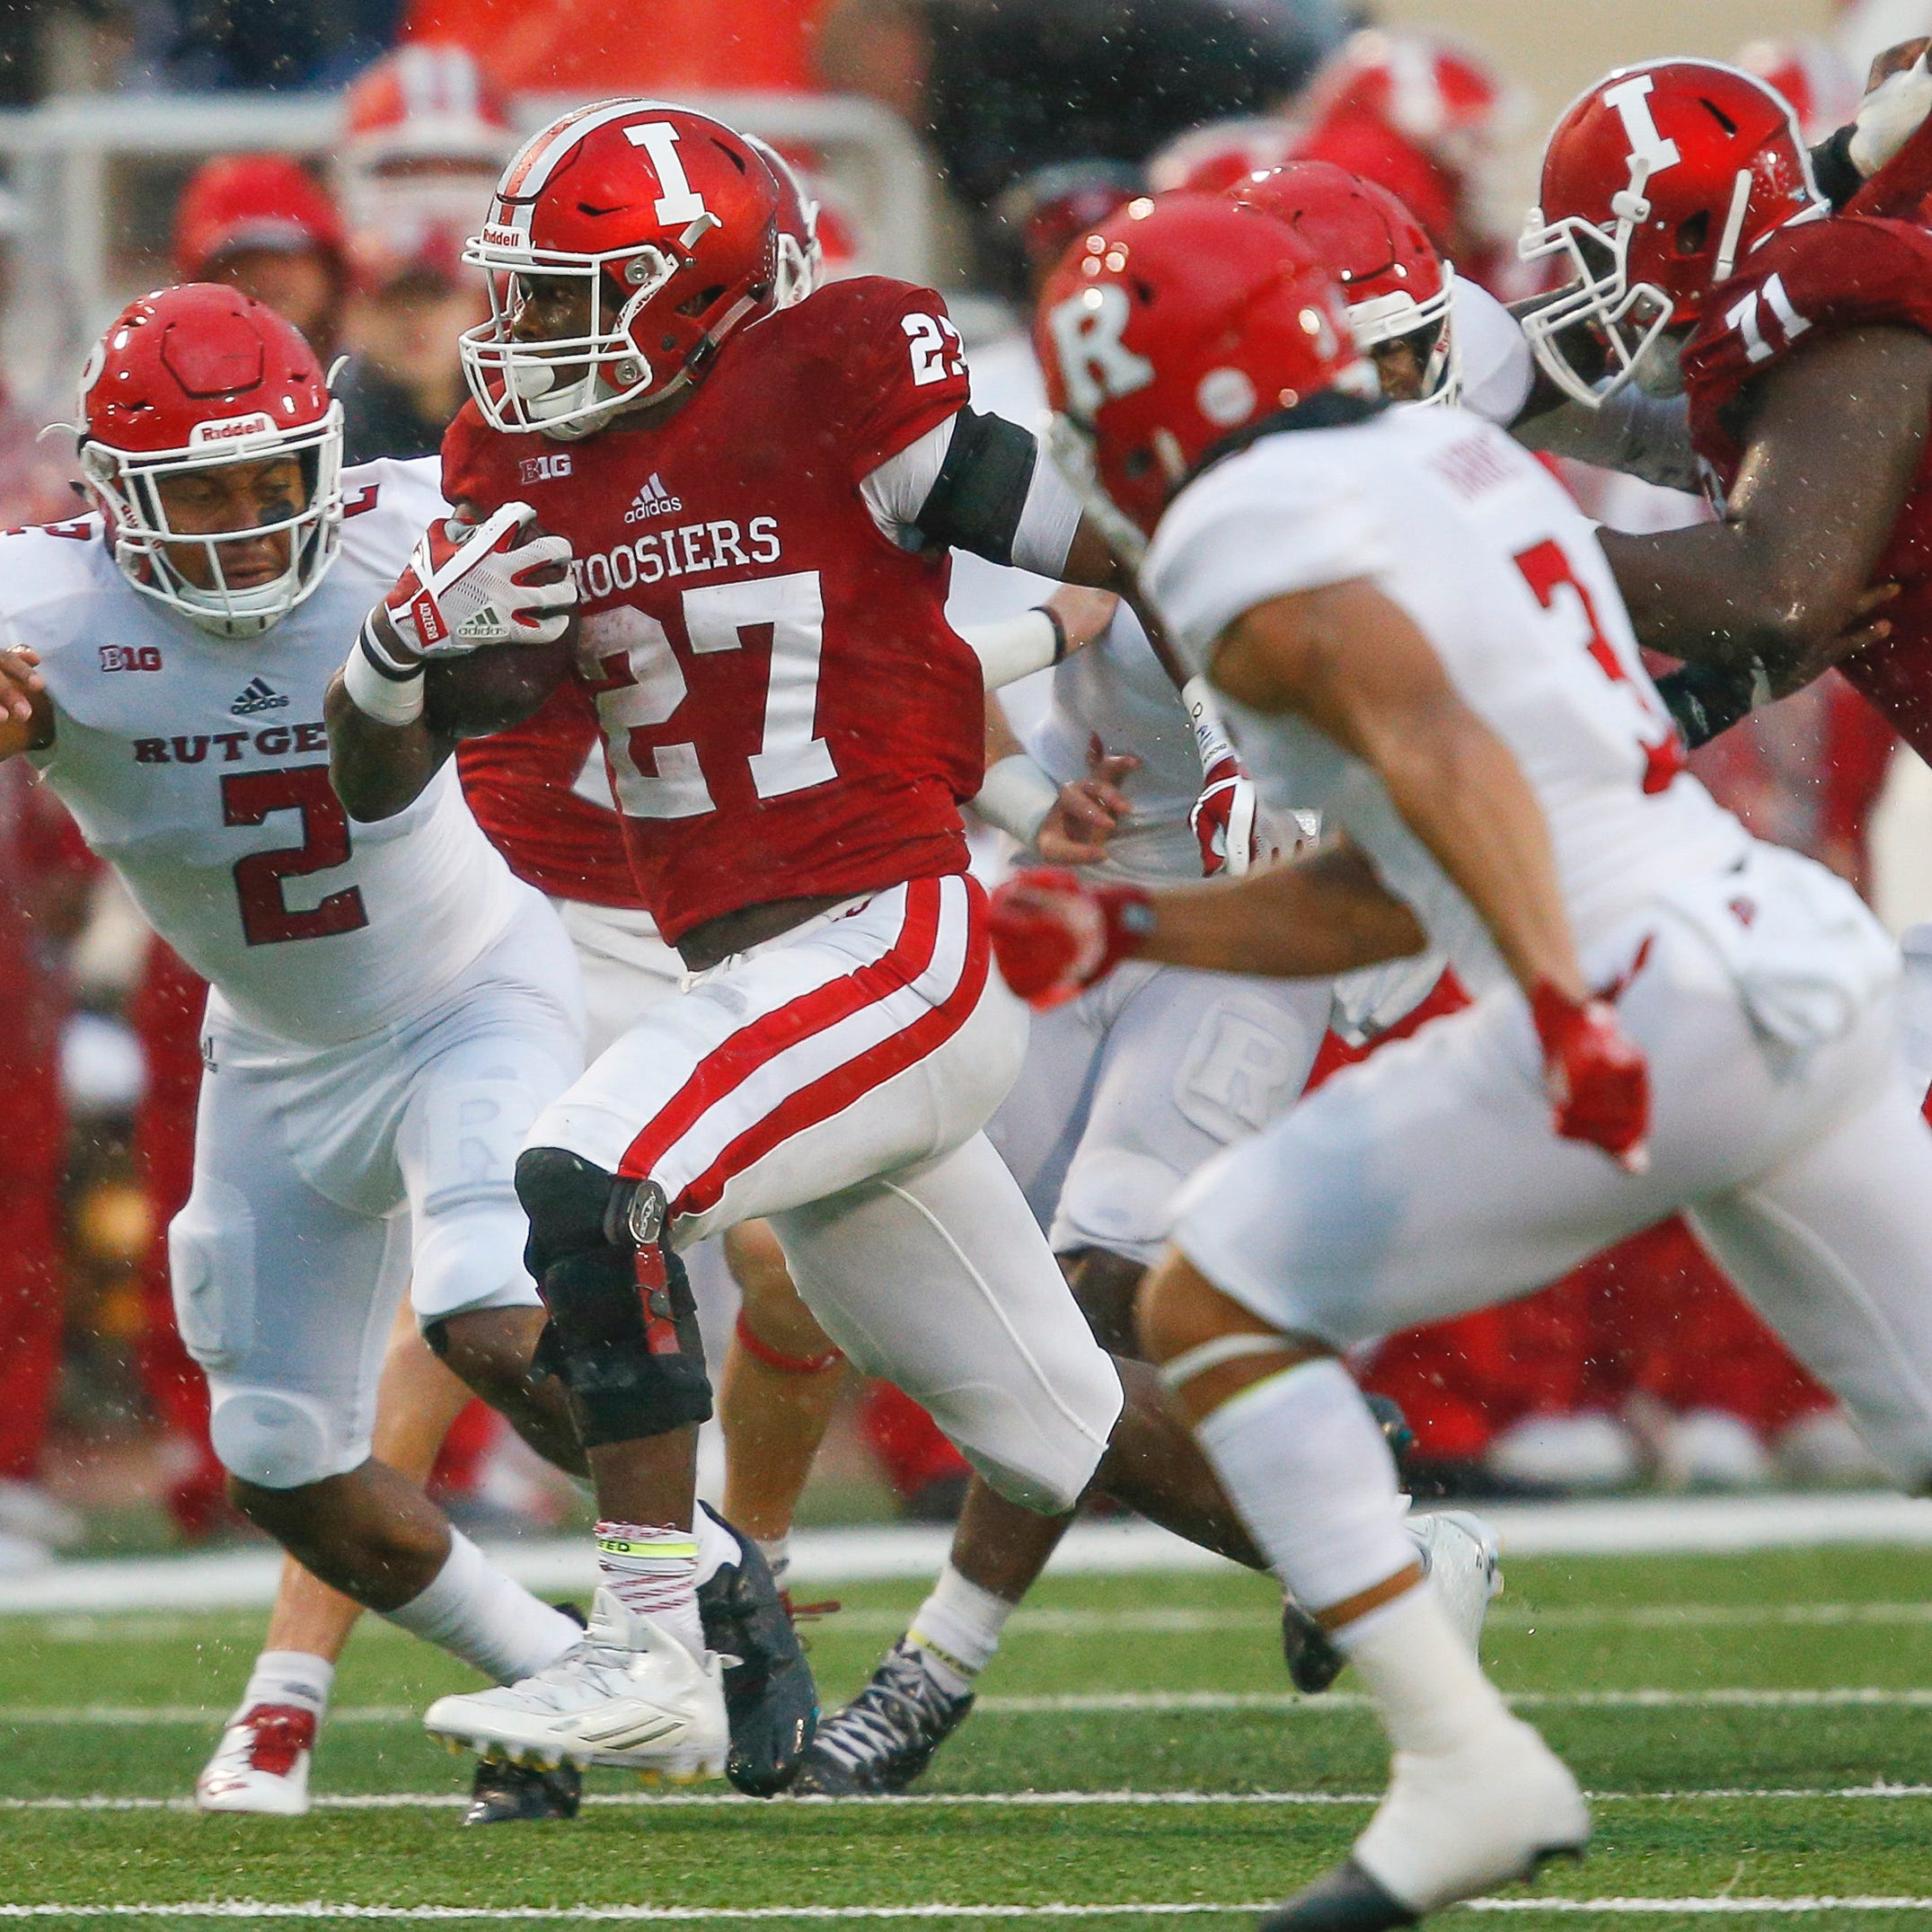 Indiana suspends running back Morgan Ellison after sex assault investigation